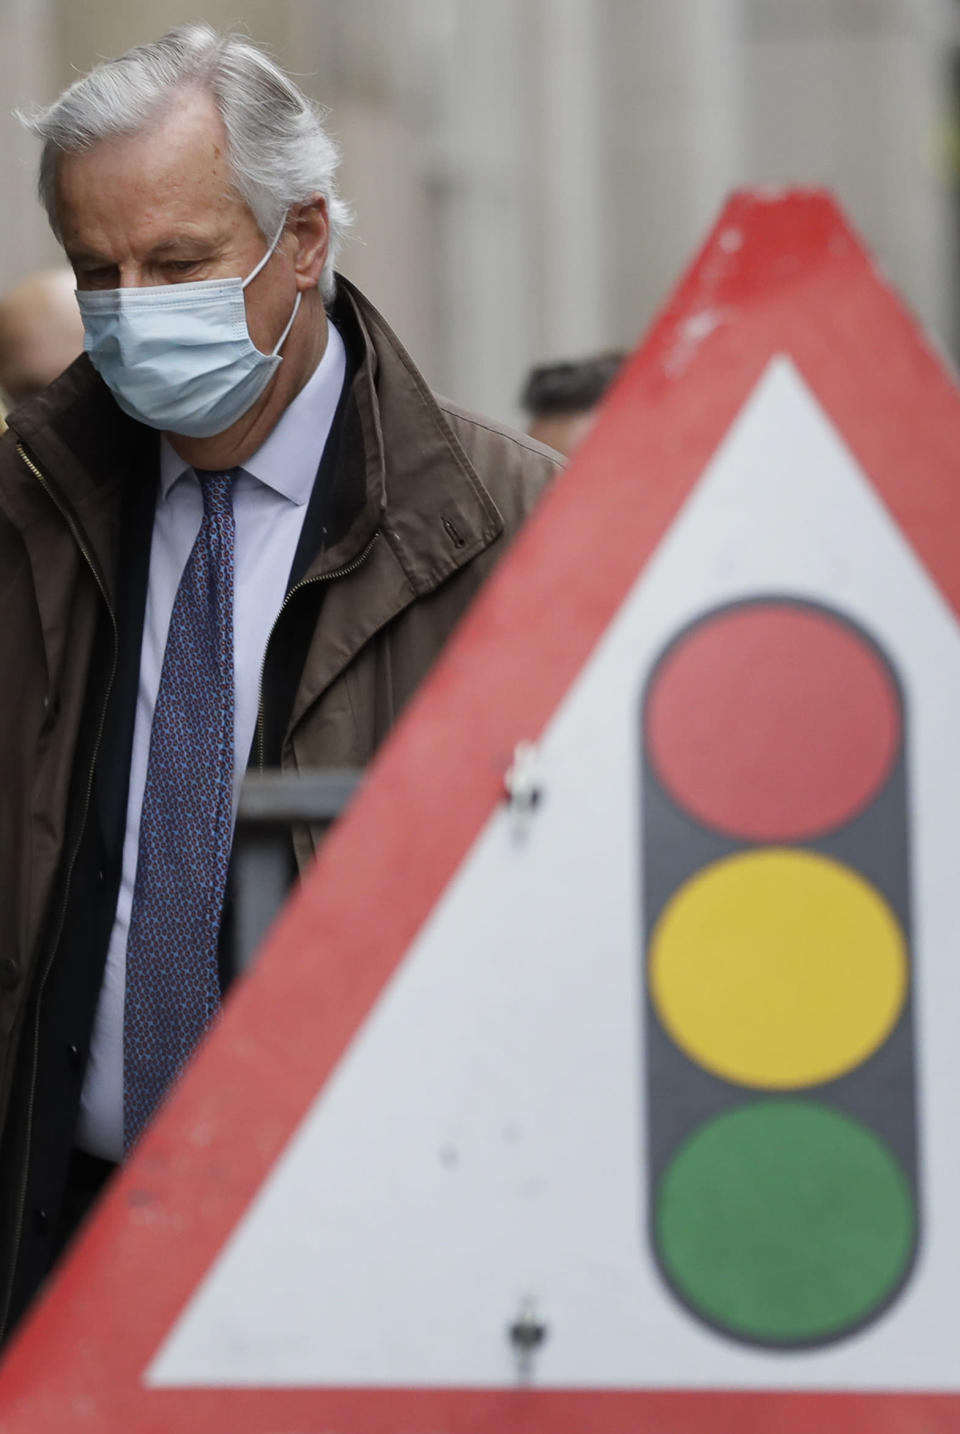 EU Chief Negotiator Michel Barnier passes a traffic sign as he walks to a conference centre in Westminster in London, Sunday, Nov. 29, 2020. Teams from Britain and the European Union are continuing face-to-face talks on a post-Brexit trade deal in the little remaining time. (AP Photo/Kirsty Wigglesworth)